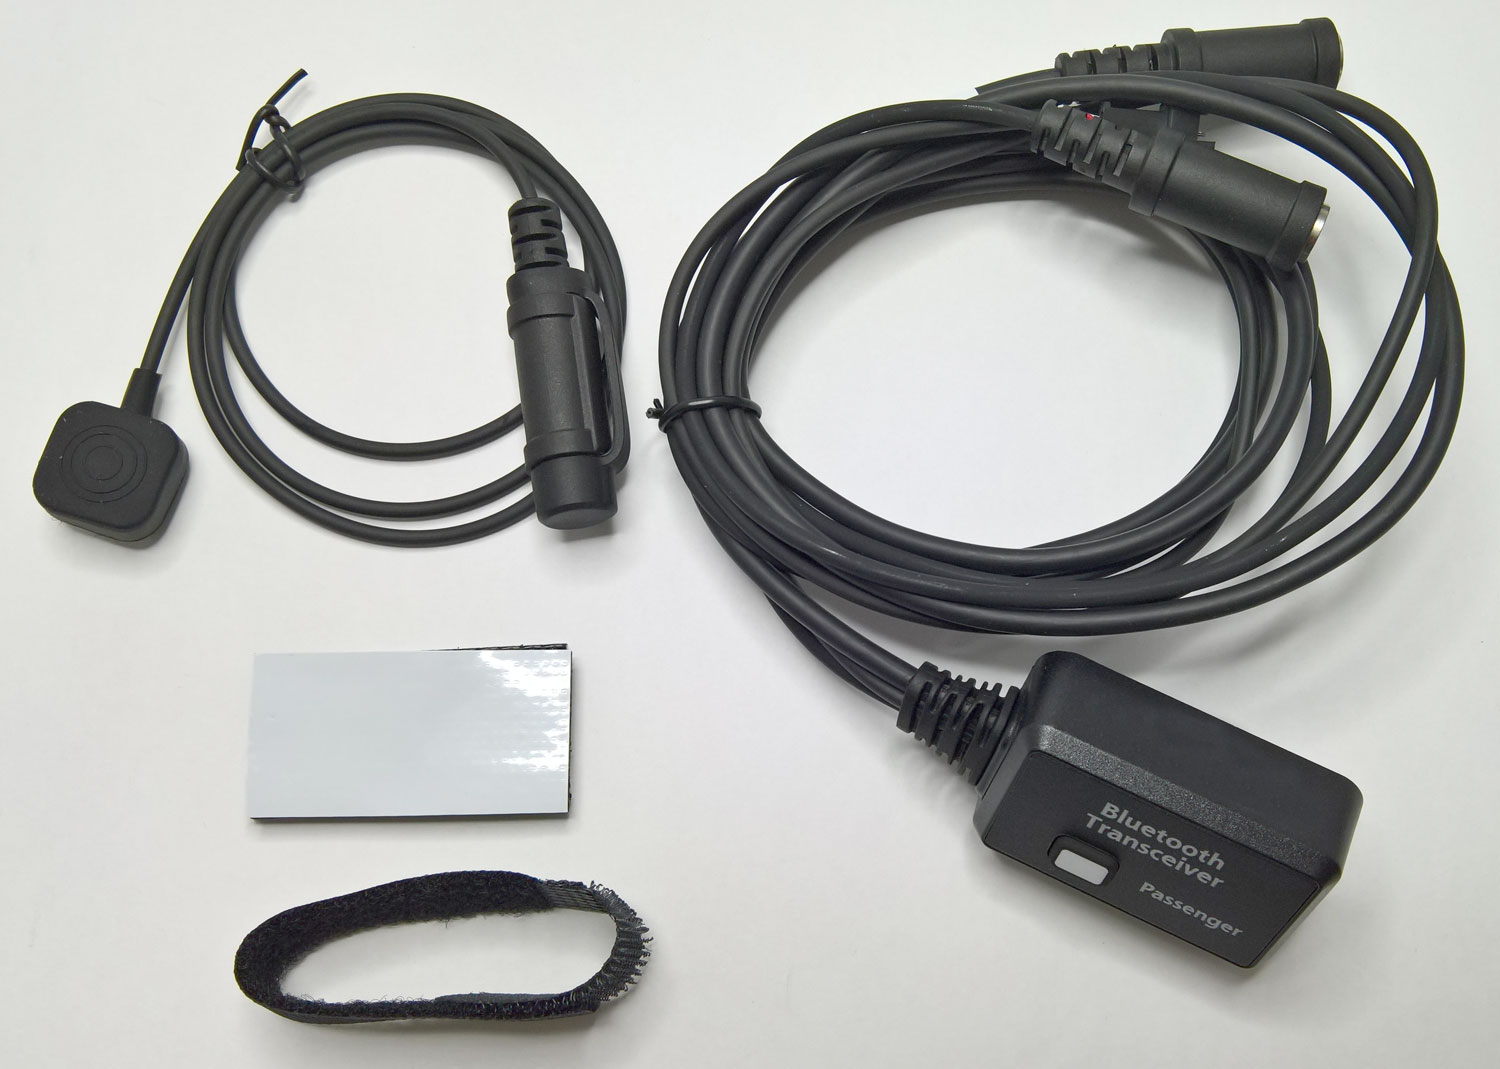 Bluetooth add-on module for passenger headset for LP-MR200-S-E PMR 446 Motorcycle radio communication system